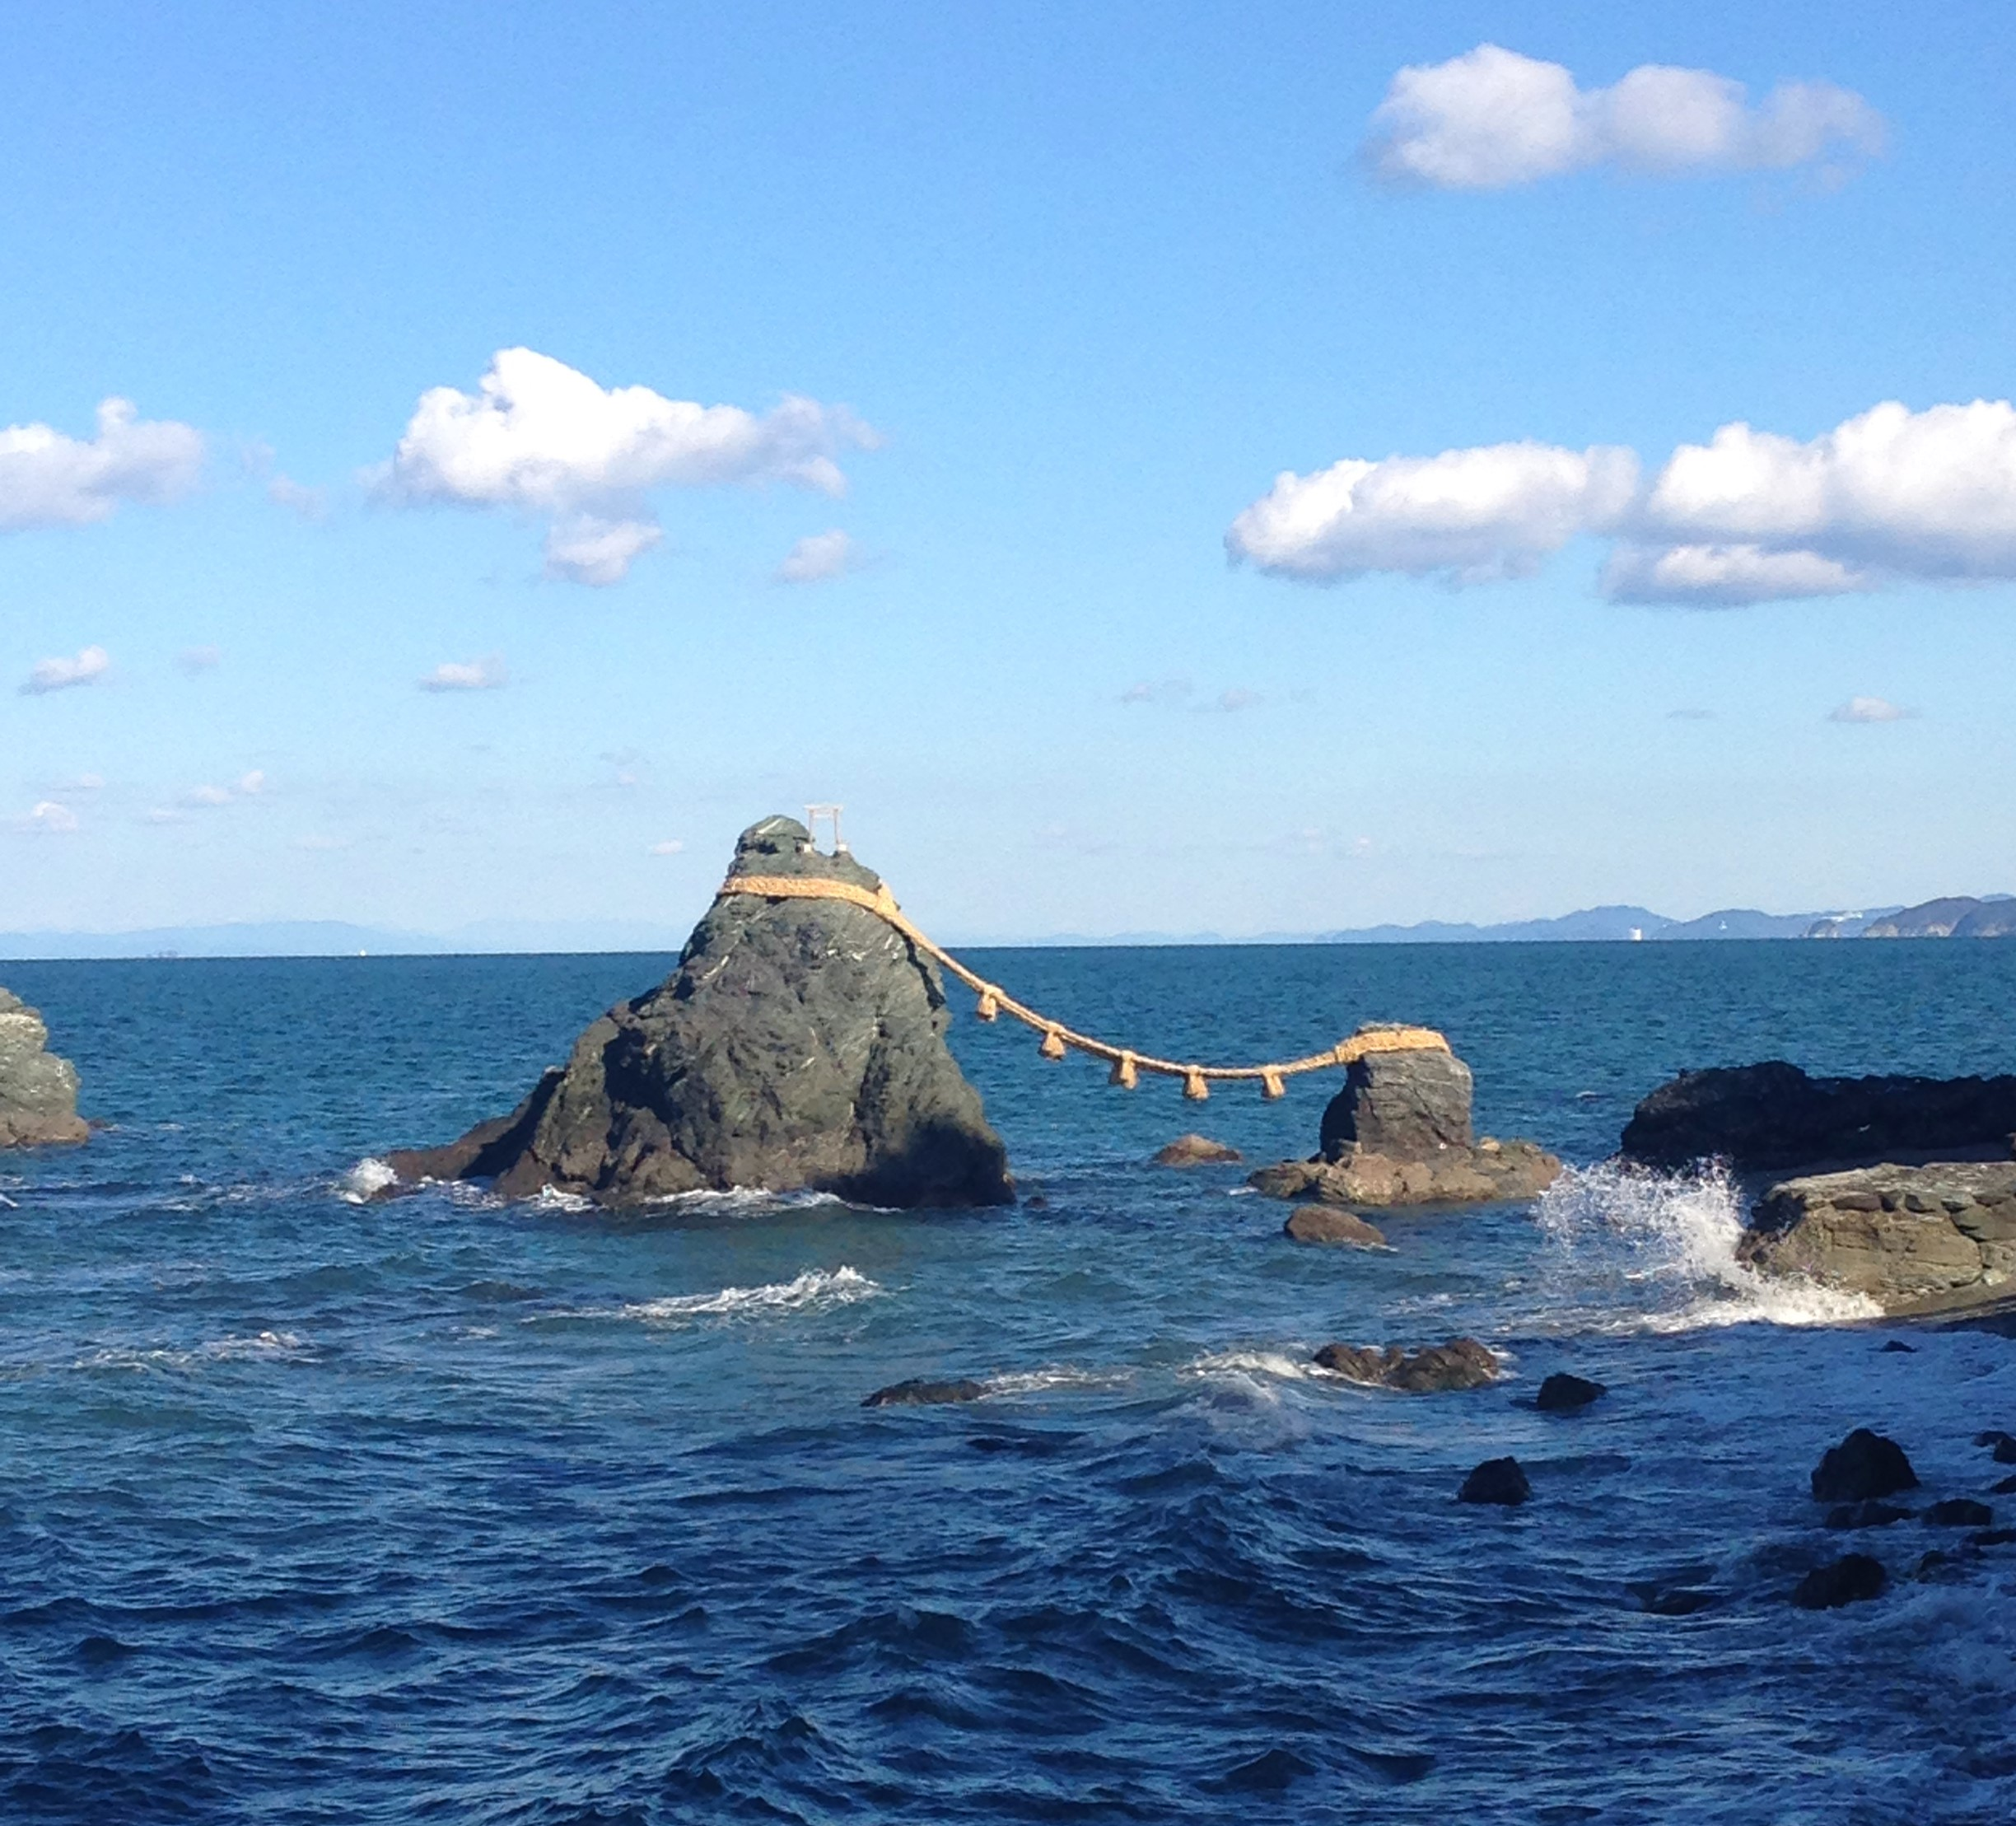 two large rocks connected by a long rope and a shrine on the taller rock in the blue sea